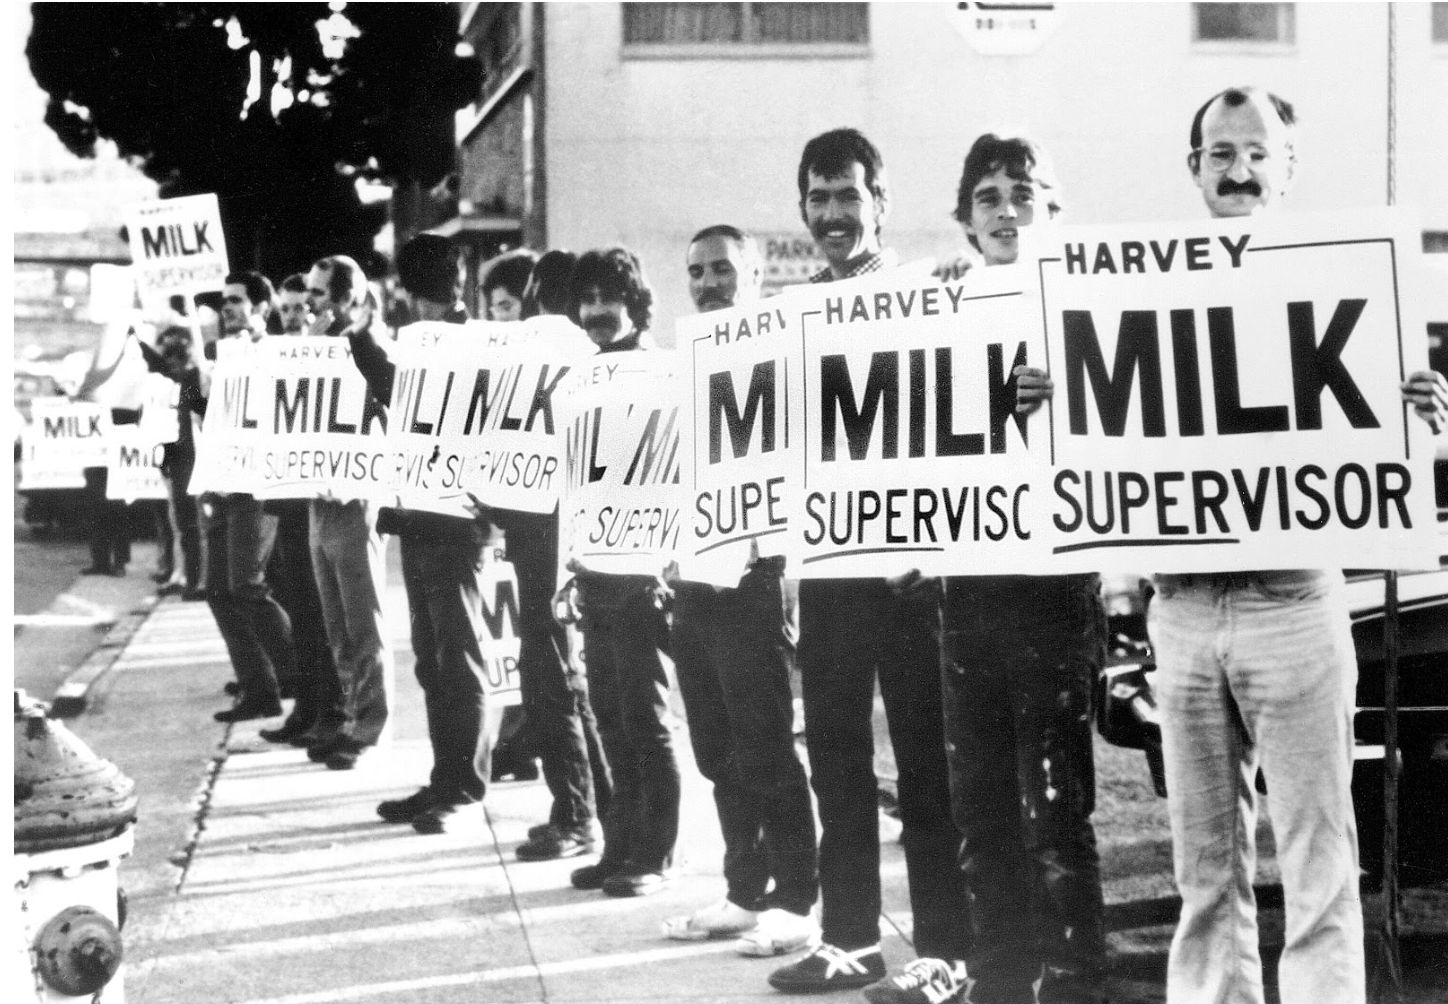 harveymilk.png